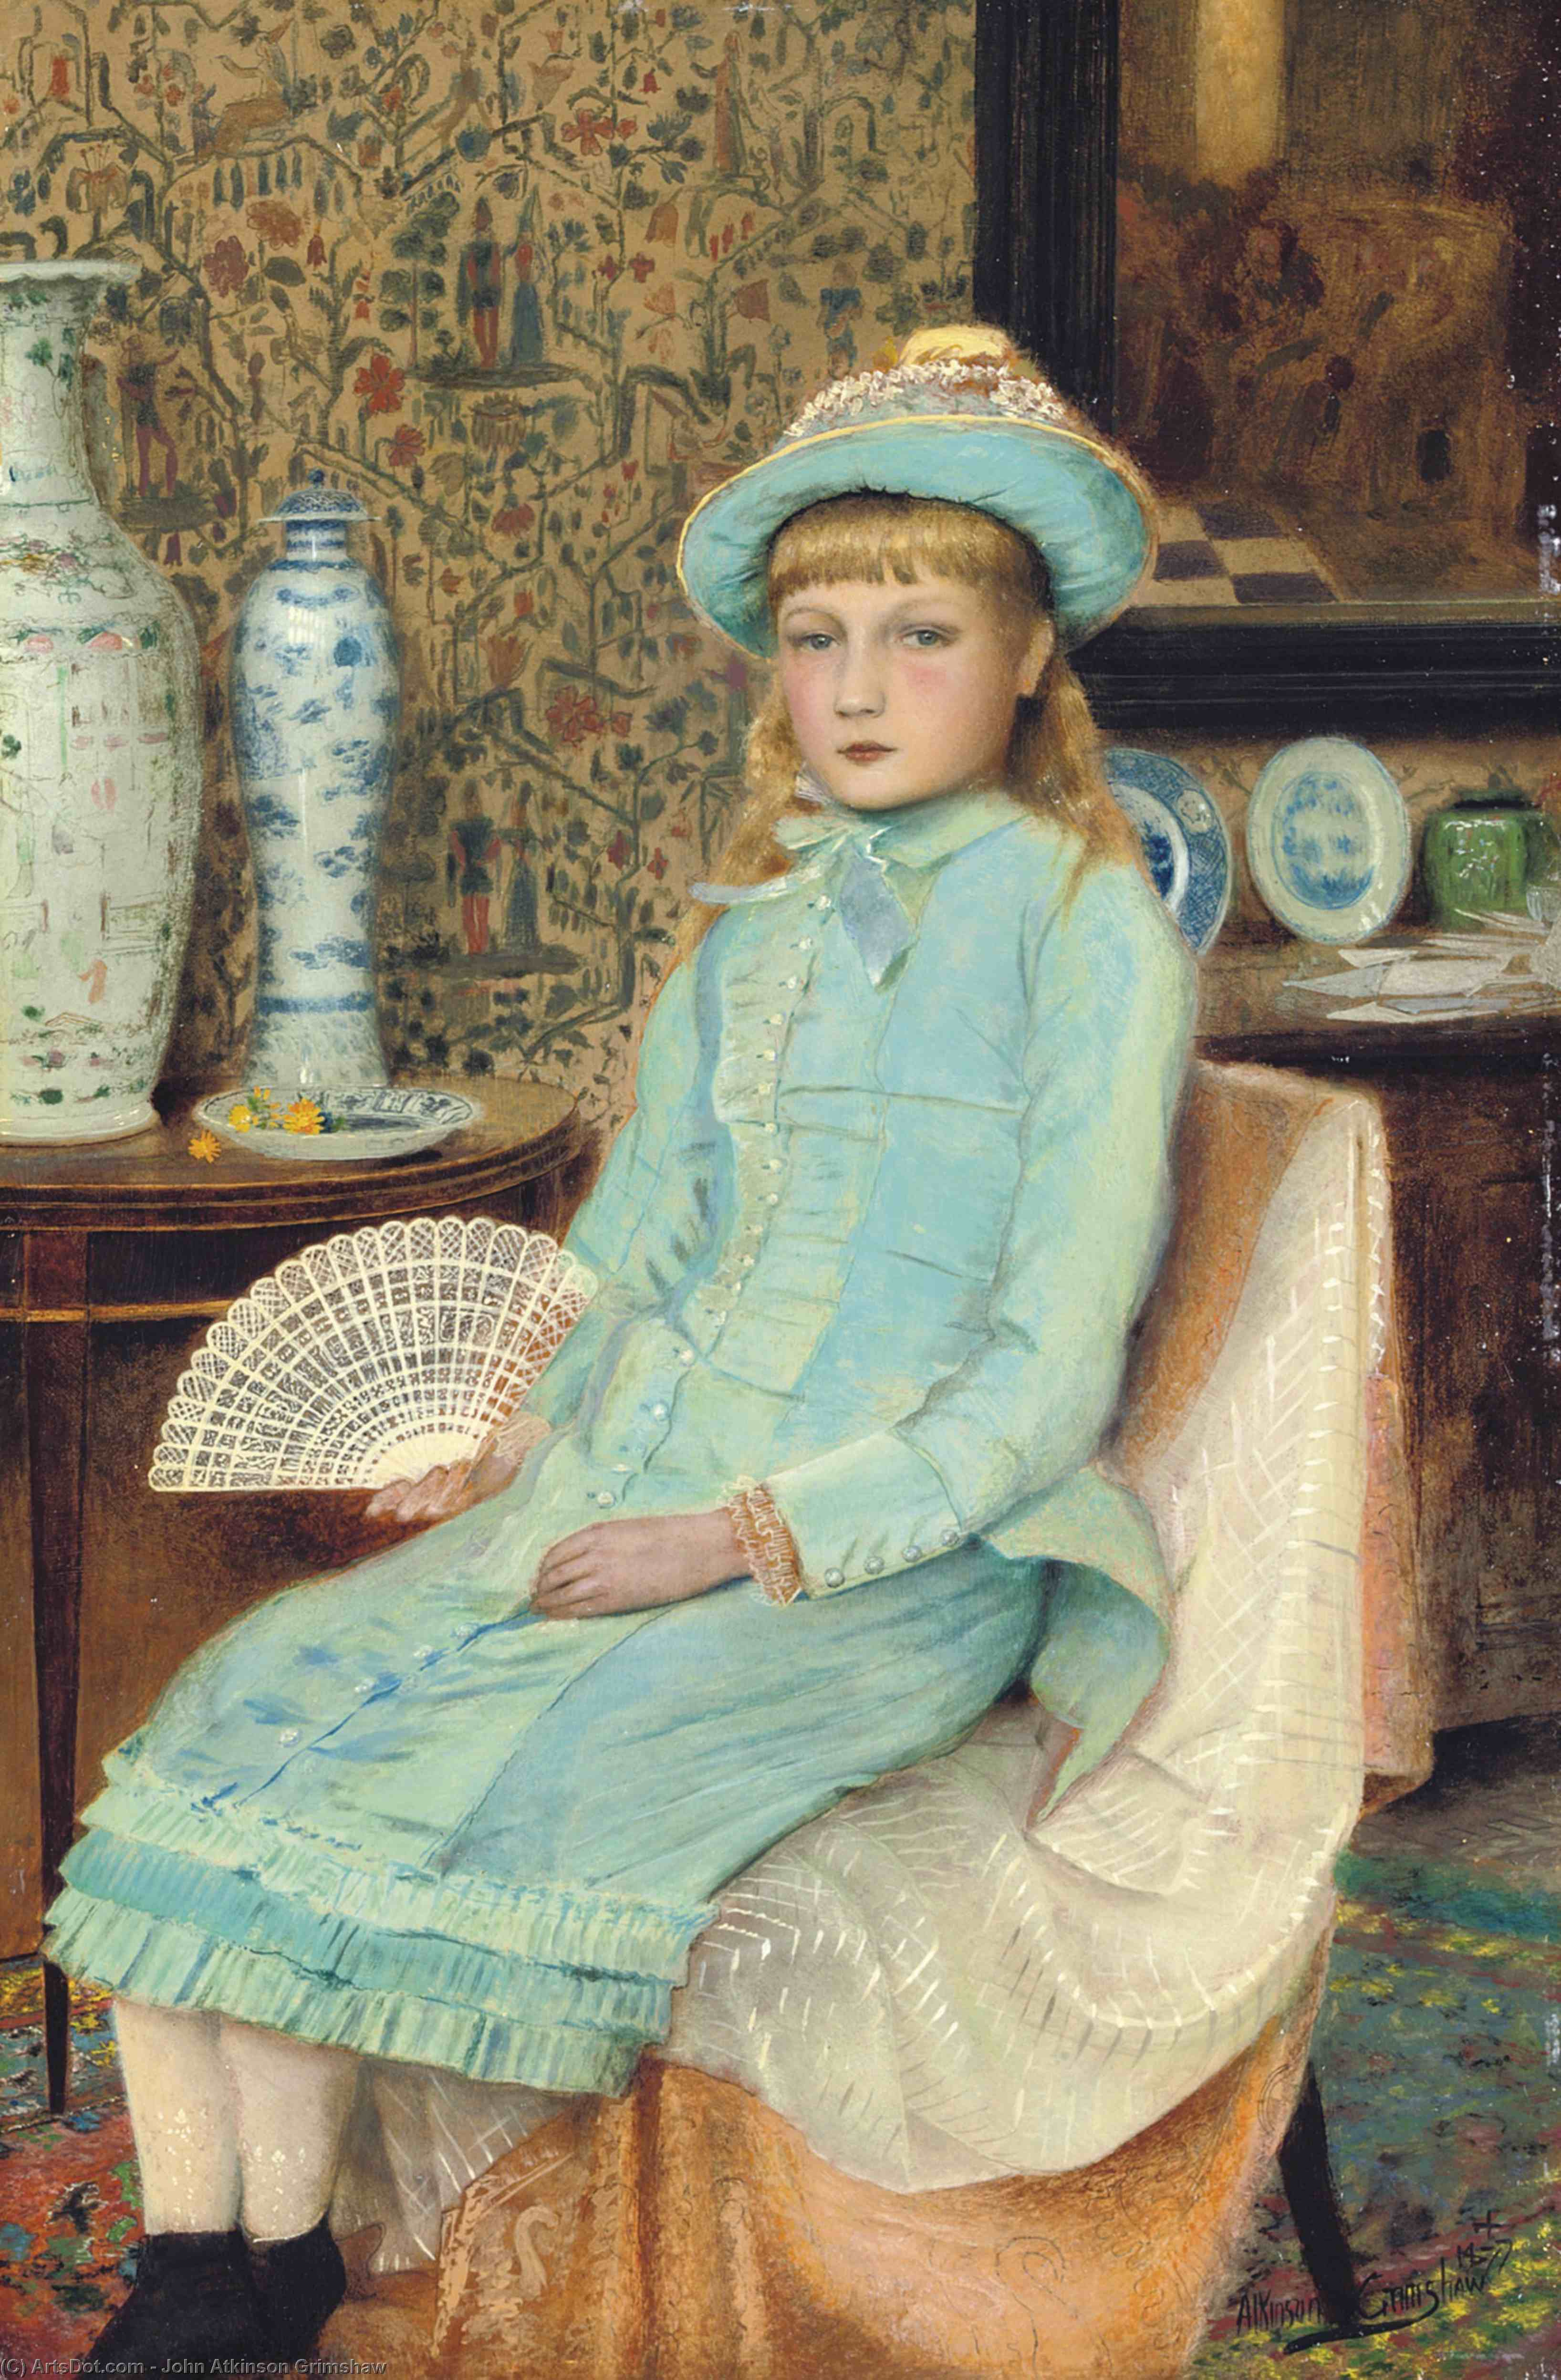 blue belle, 1877 de John Atkinson Grimshaw (1836-1893, United Kingdom)